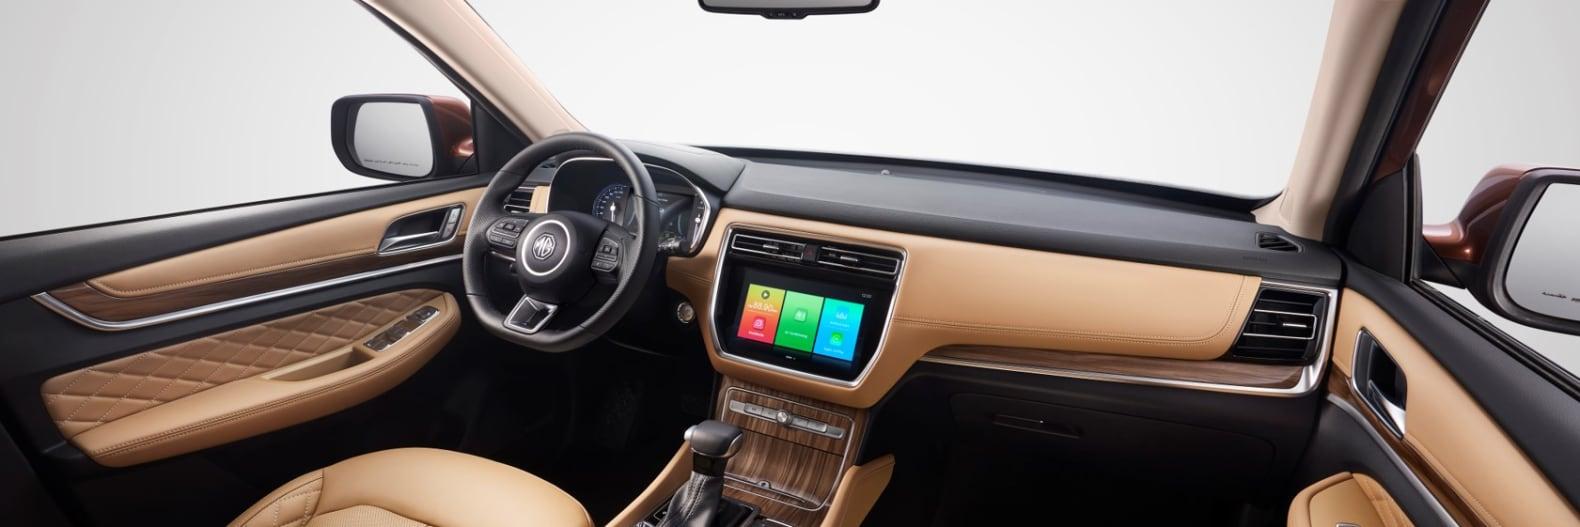 MG RX8 Interactive Technology